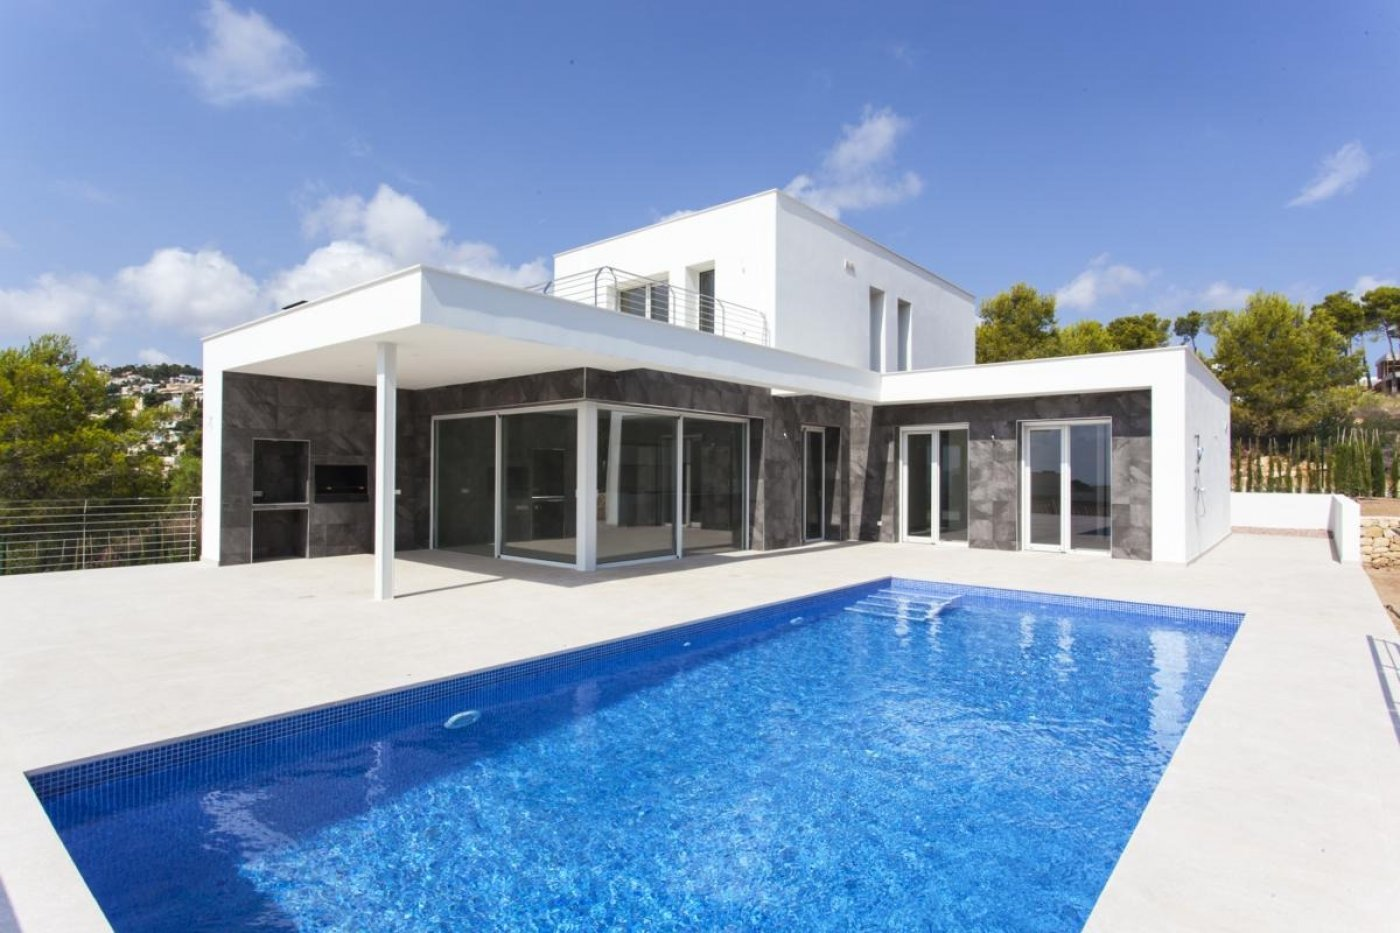 Villa - Ready To Move And Live - Benimeit - Moraira